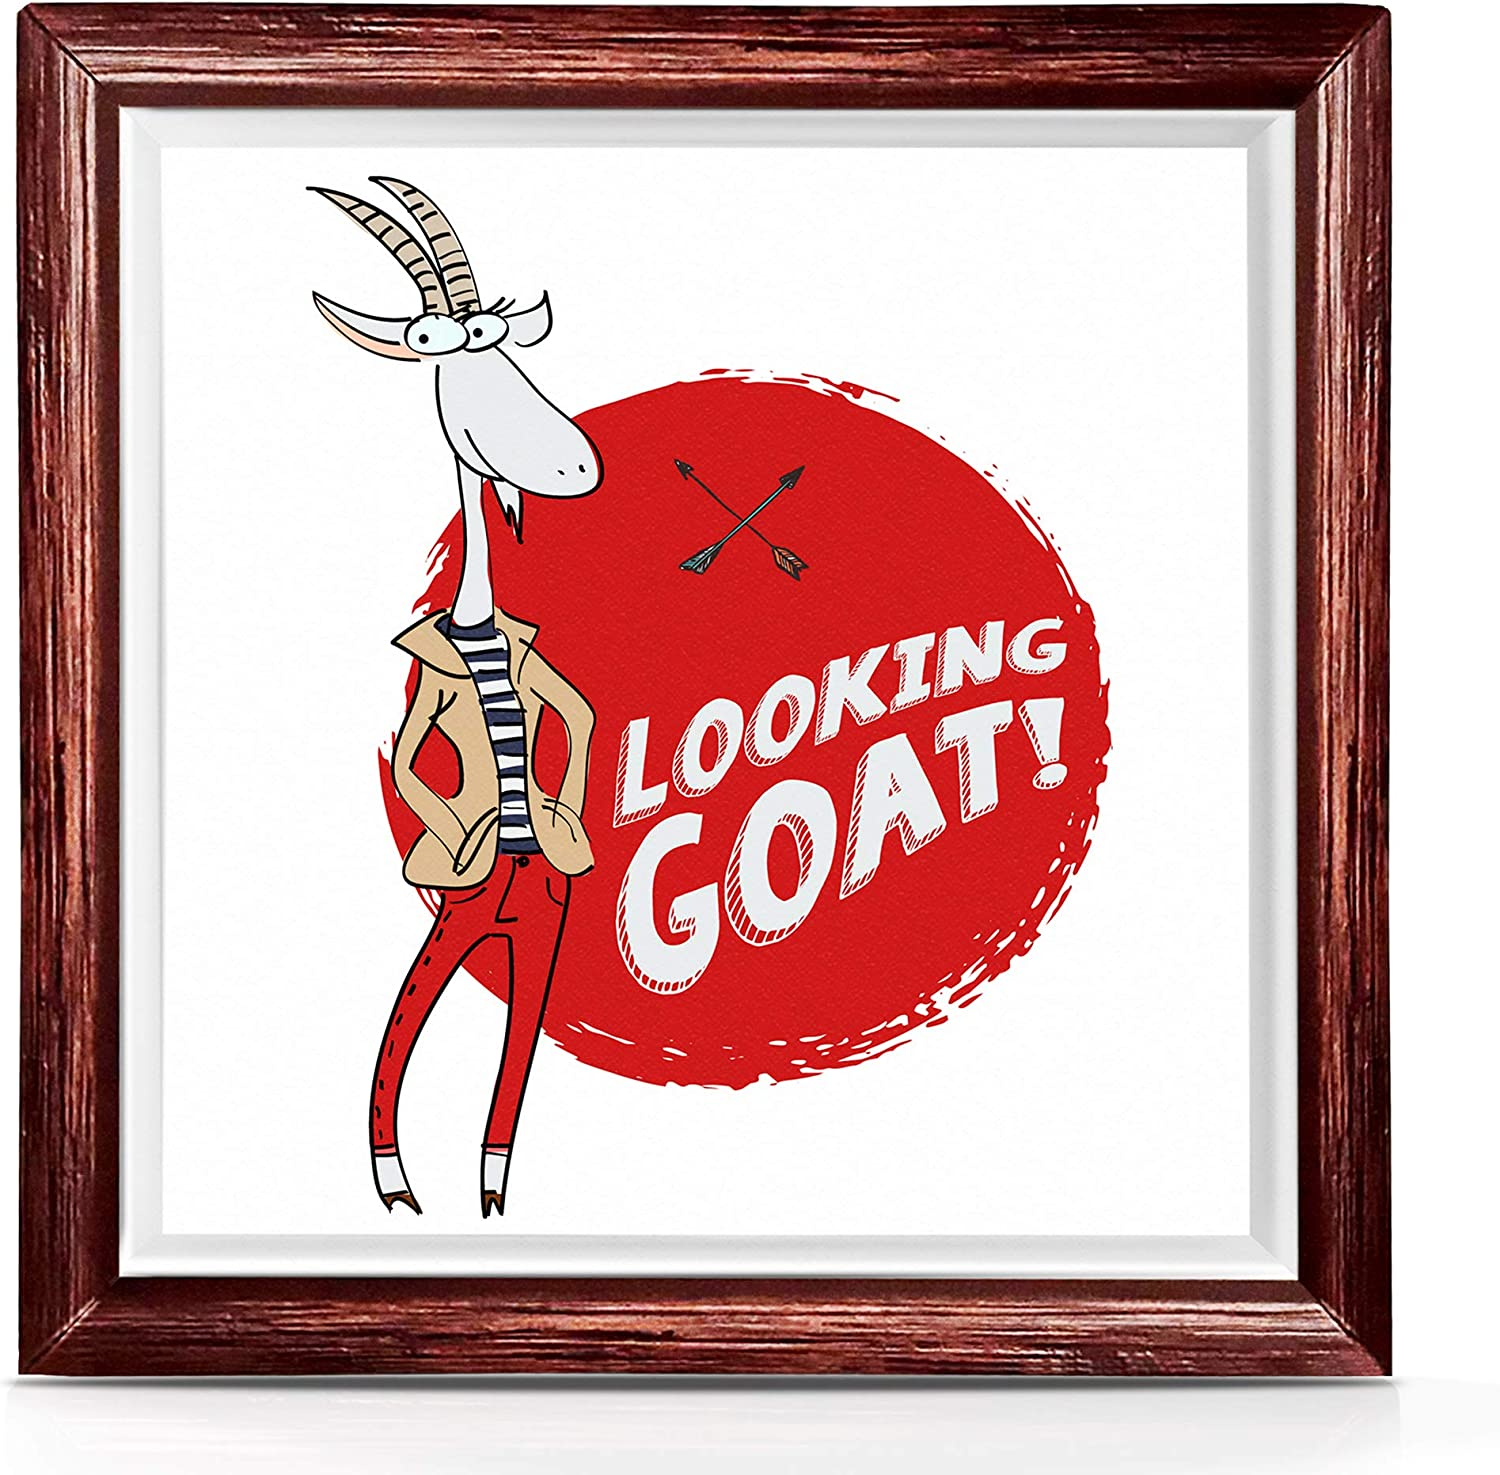 Goat Gifts for Goat Lovers | Unique Goat Decorations for Outdoors Or Indoors | Goat Gift for Women and Men | Goat Kitchen Accessories | 7x7 Ceramic Goat Decor Artwork | Cute Goat Gifts